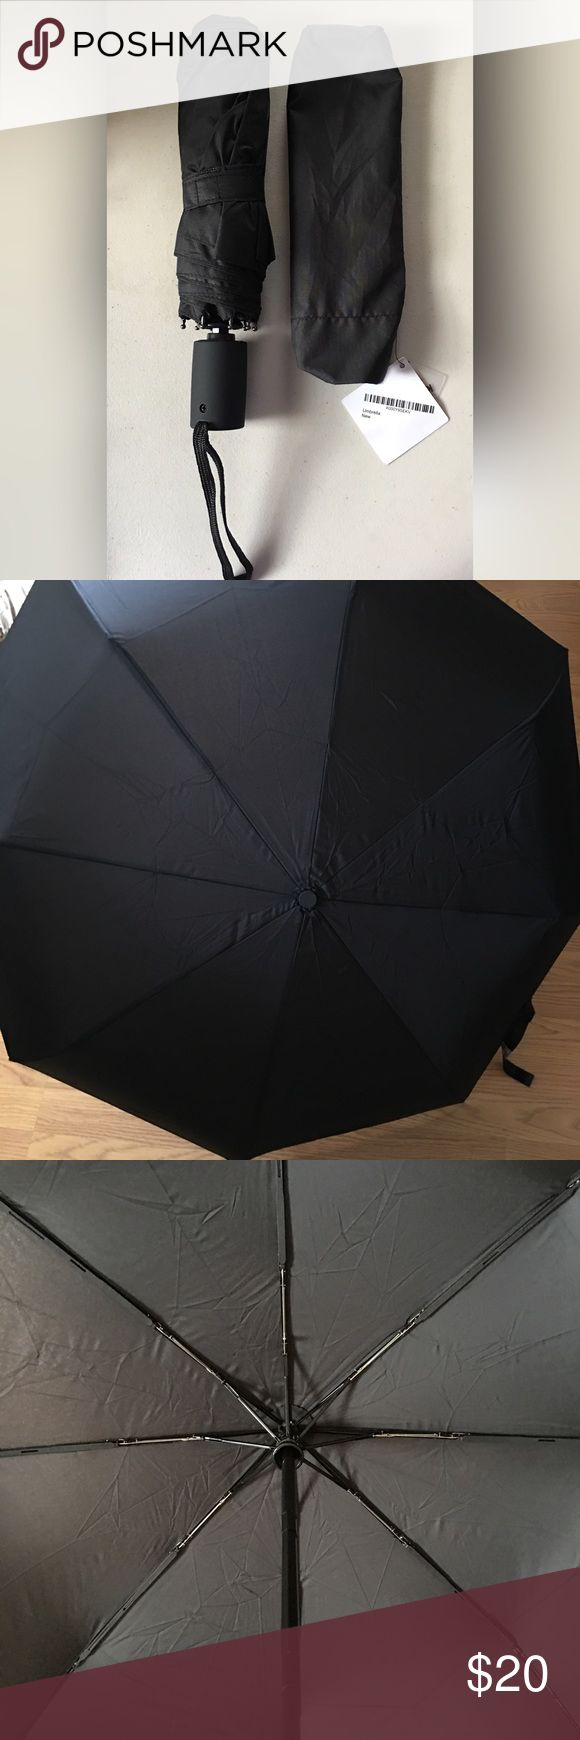 Auto Open/Close Umbrella BLACK ULTRA STRONG CONSTRUCTION; The Travel Umbrella has been designed with a super strong aluminium pole and ribs to offer market leading protection from wind, for a design that won't collapse! SUPER WIDE DESIGN; want a great automatic folding umbrella with the perfect size. Travel Umbrella offers the best size for covering 2 people fully from rain, measuring a generous 37 inches (94 cm) when fully open for the perfect coverage! LIGHT WEIGHT AND COMPACT; Accessories…